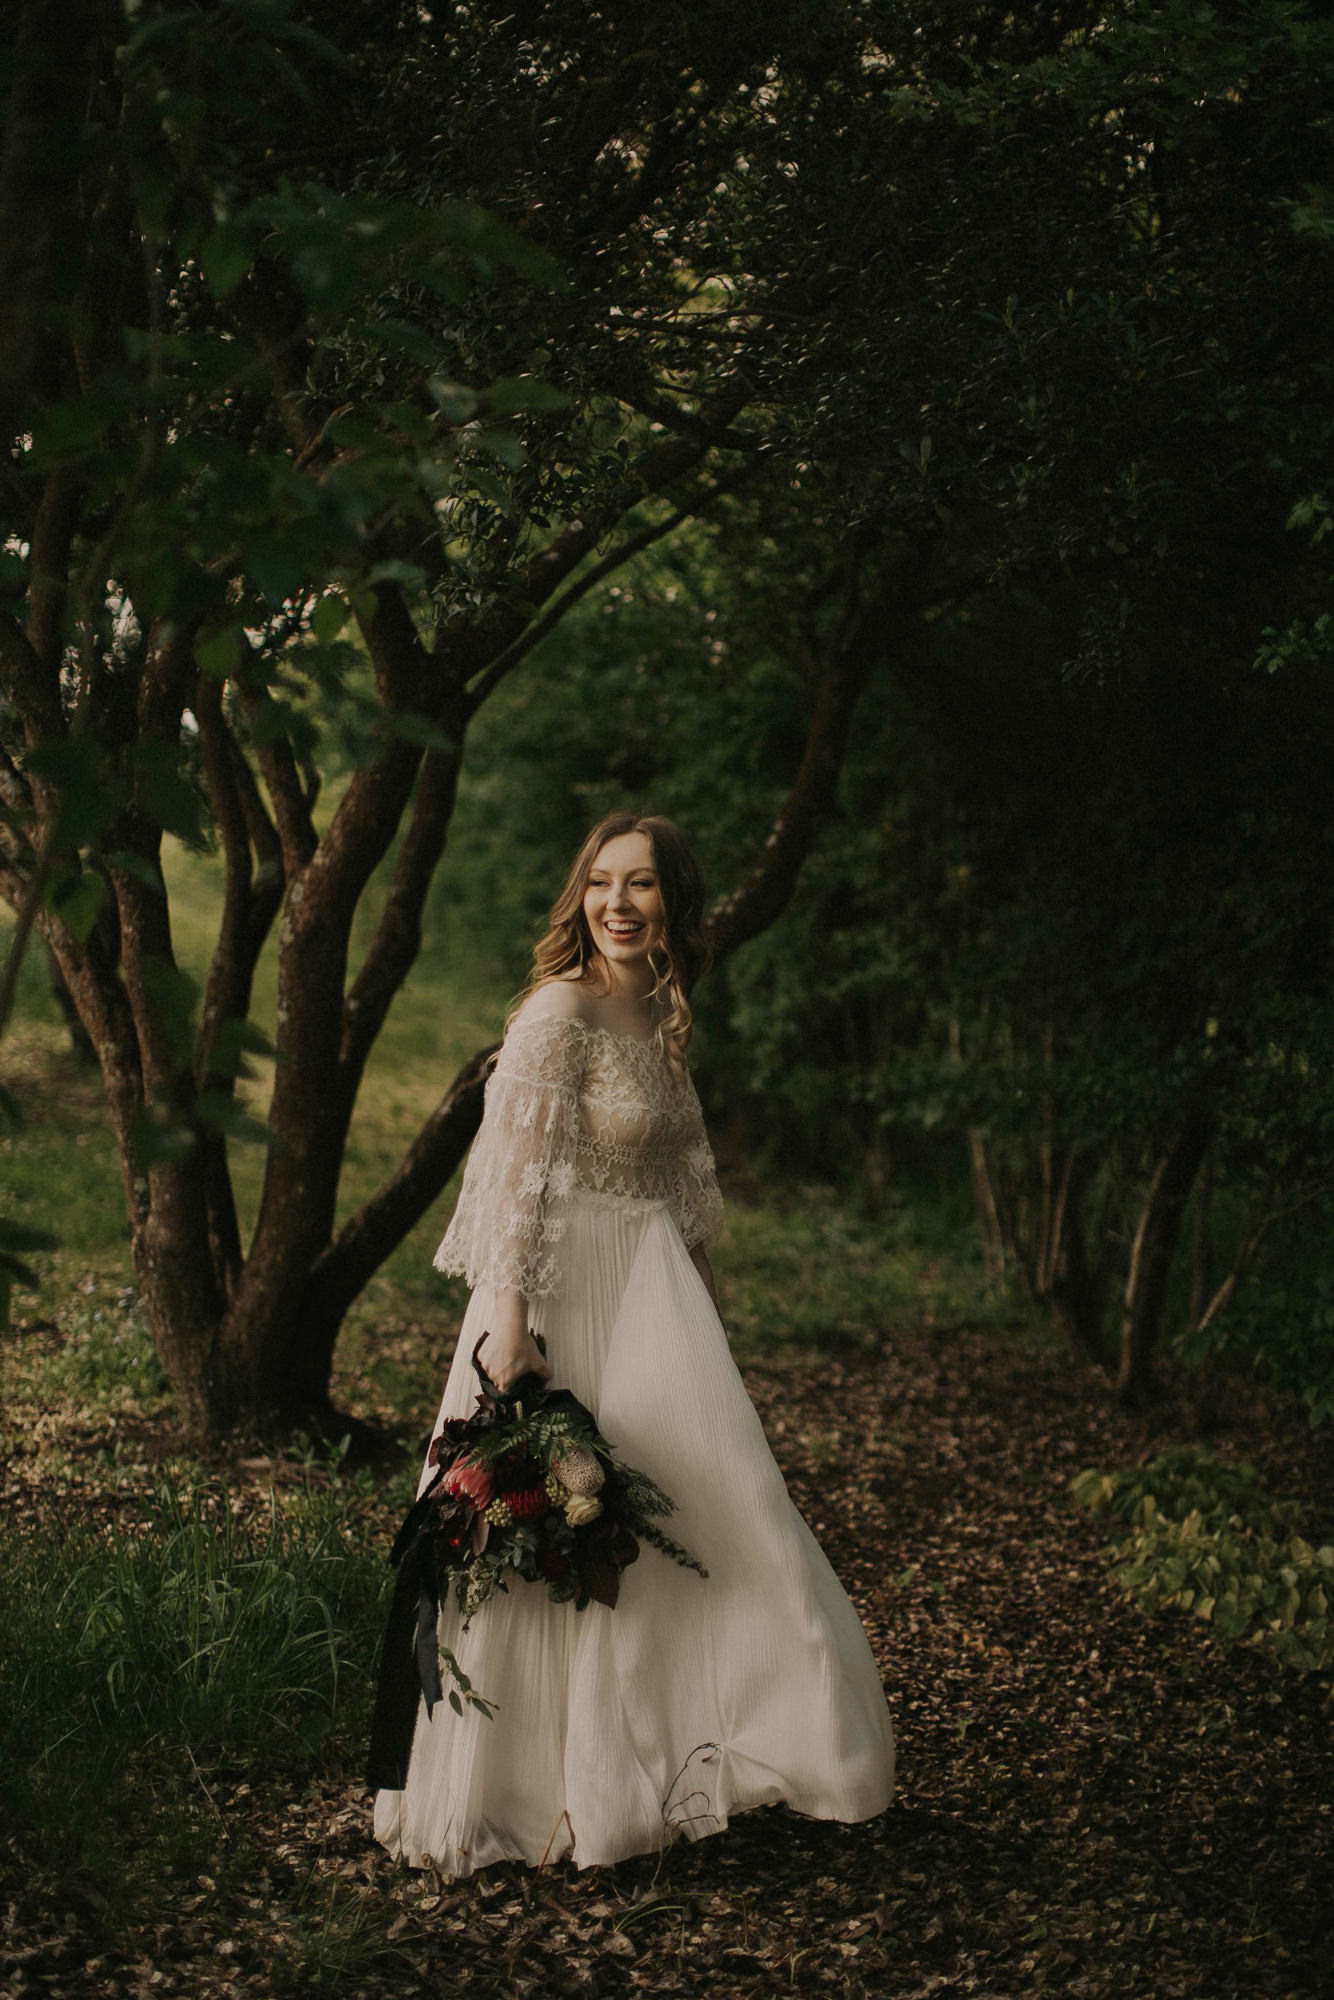 Romantic portrait of bride in forest by Dan O'Day